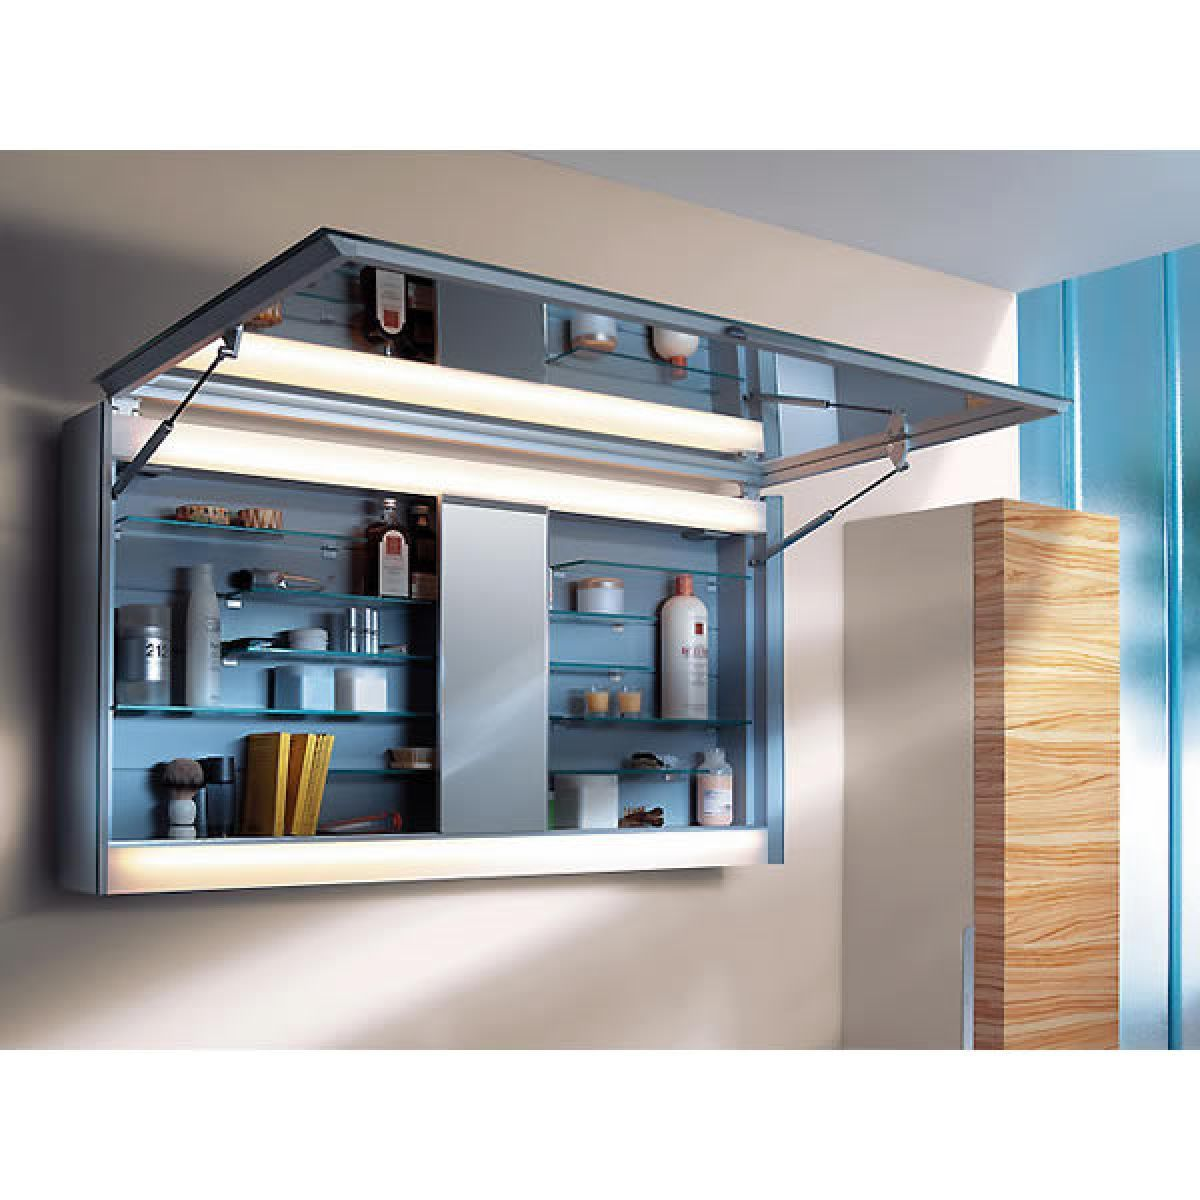 Amazing storage and cool smooth action hydraulic door